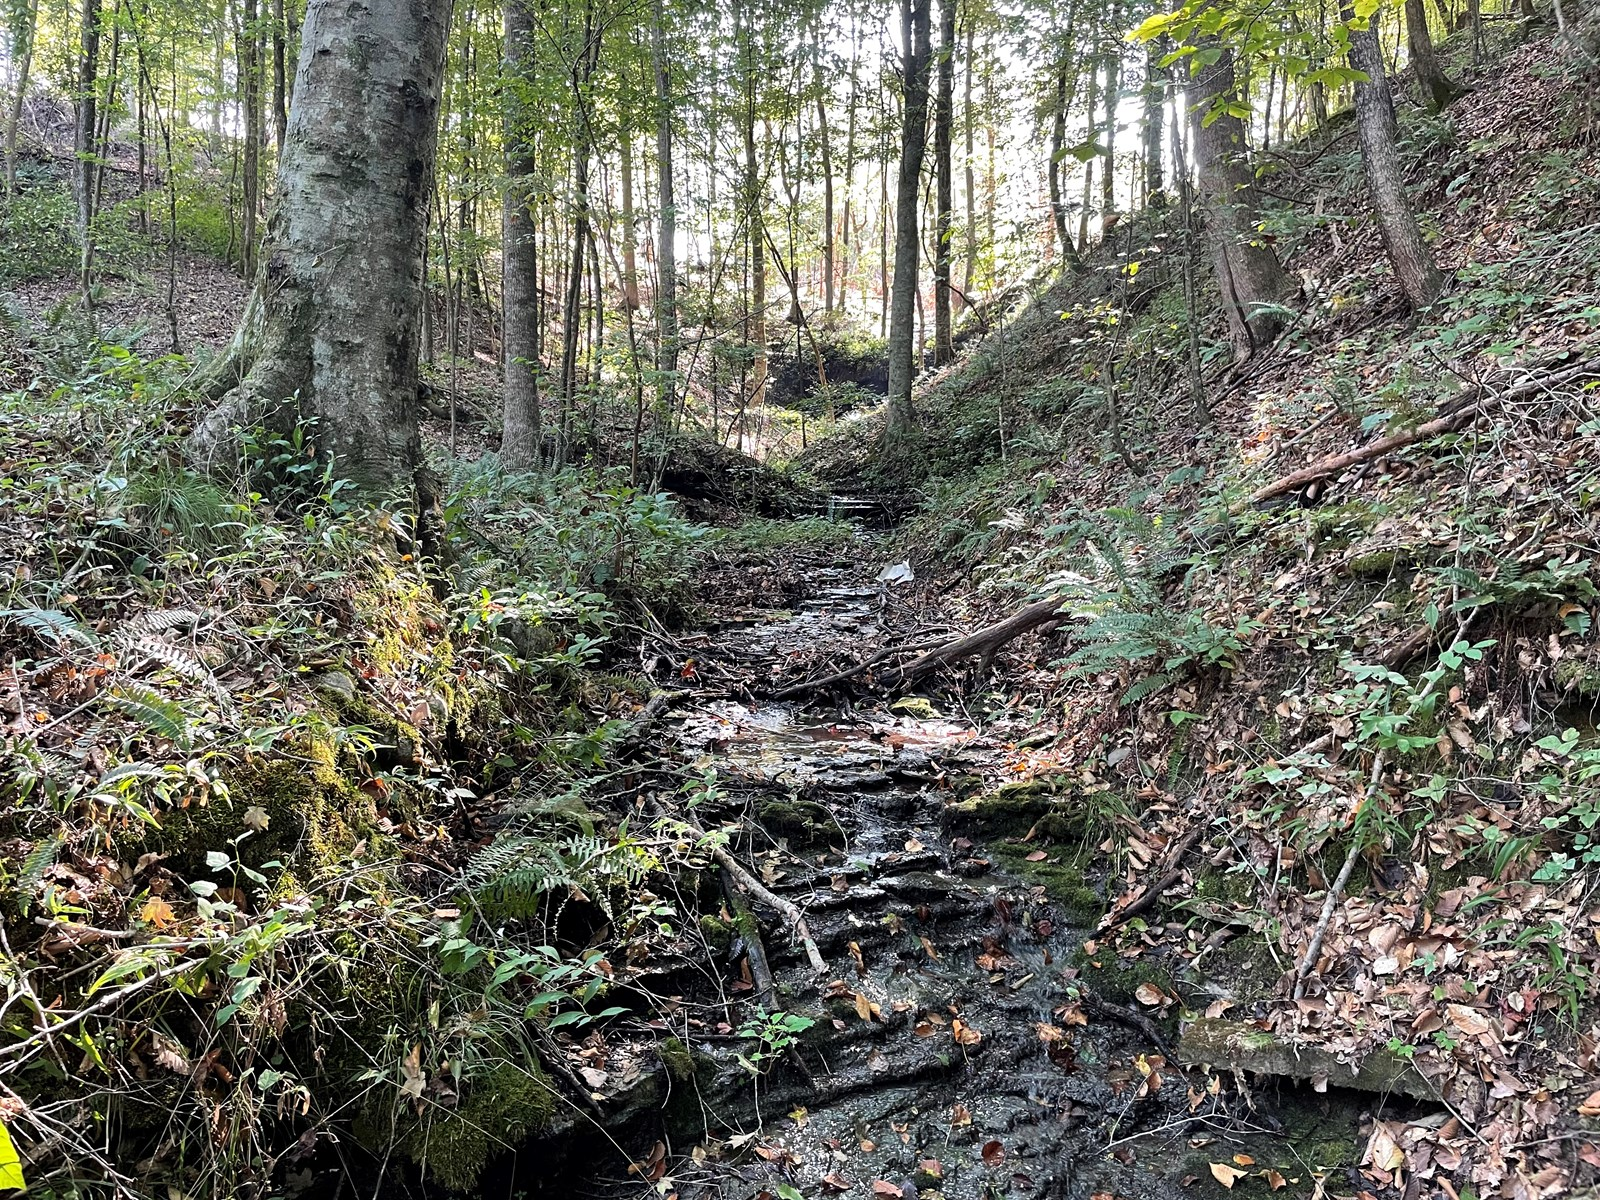 119.85 Acres Vacant land for sale that is ready to hunt!